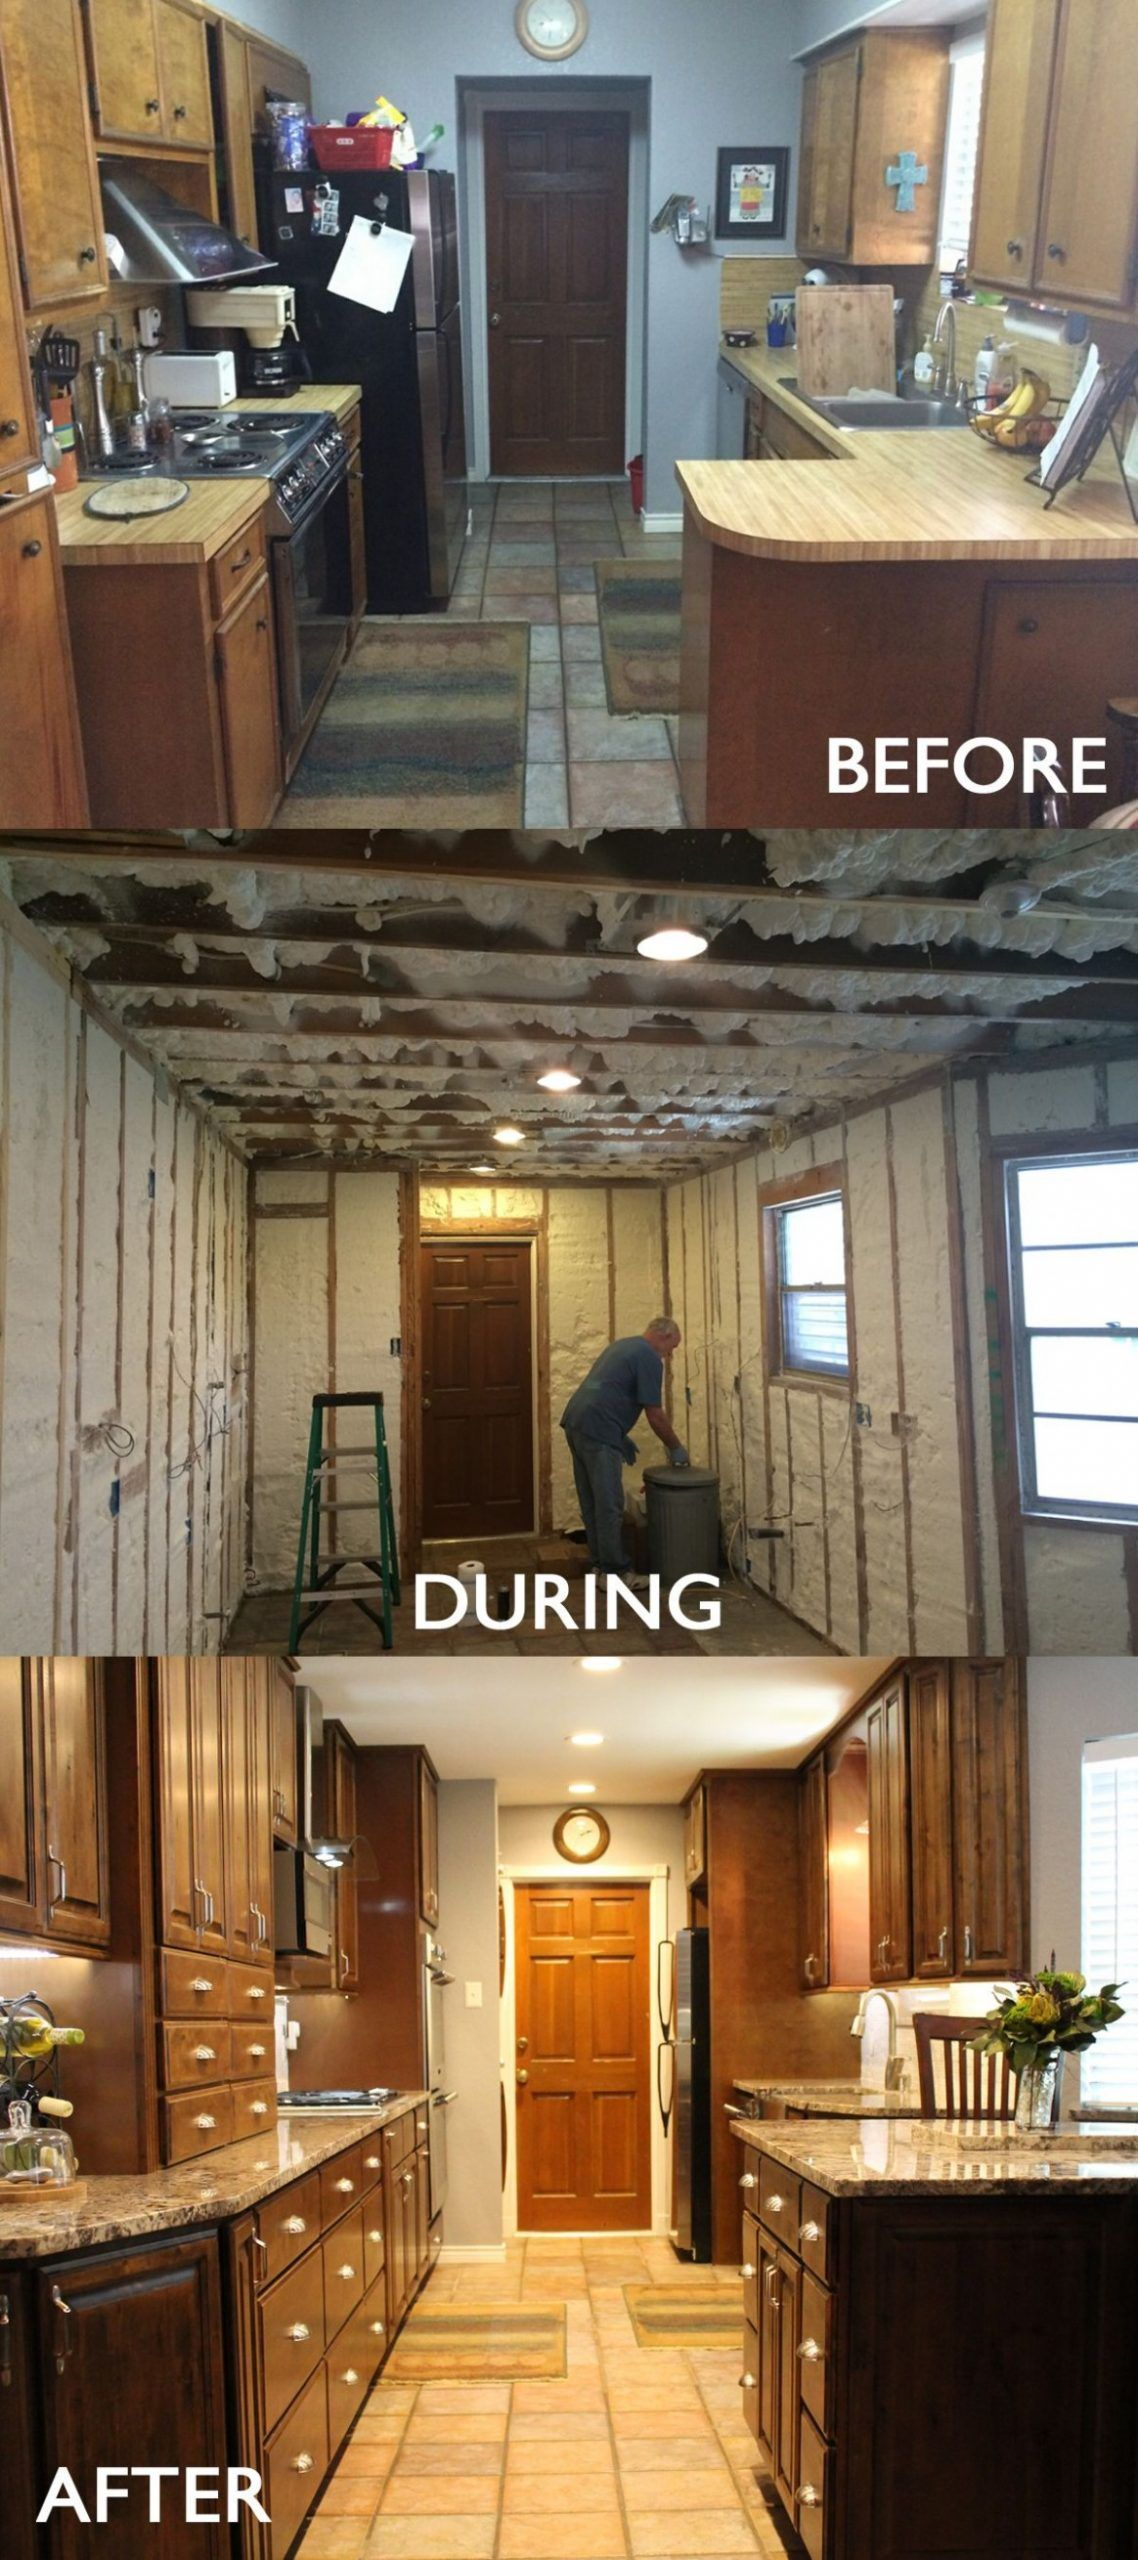 Pin By Amandand Russ On For The Home Mobile Home Bathrooms Remodeling Mobile Homes Mobile Home Bathroom